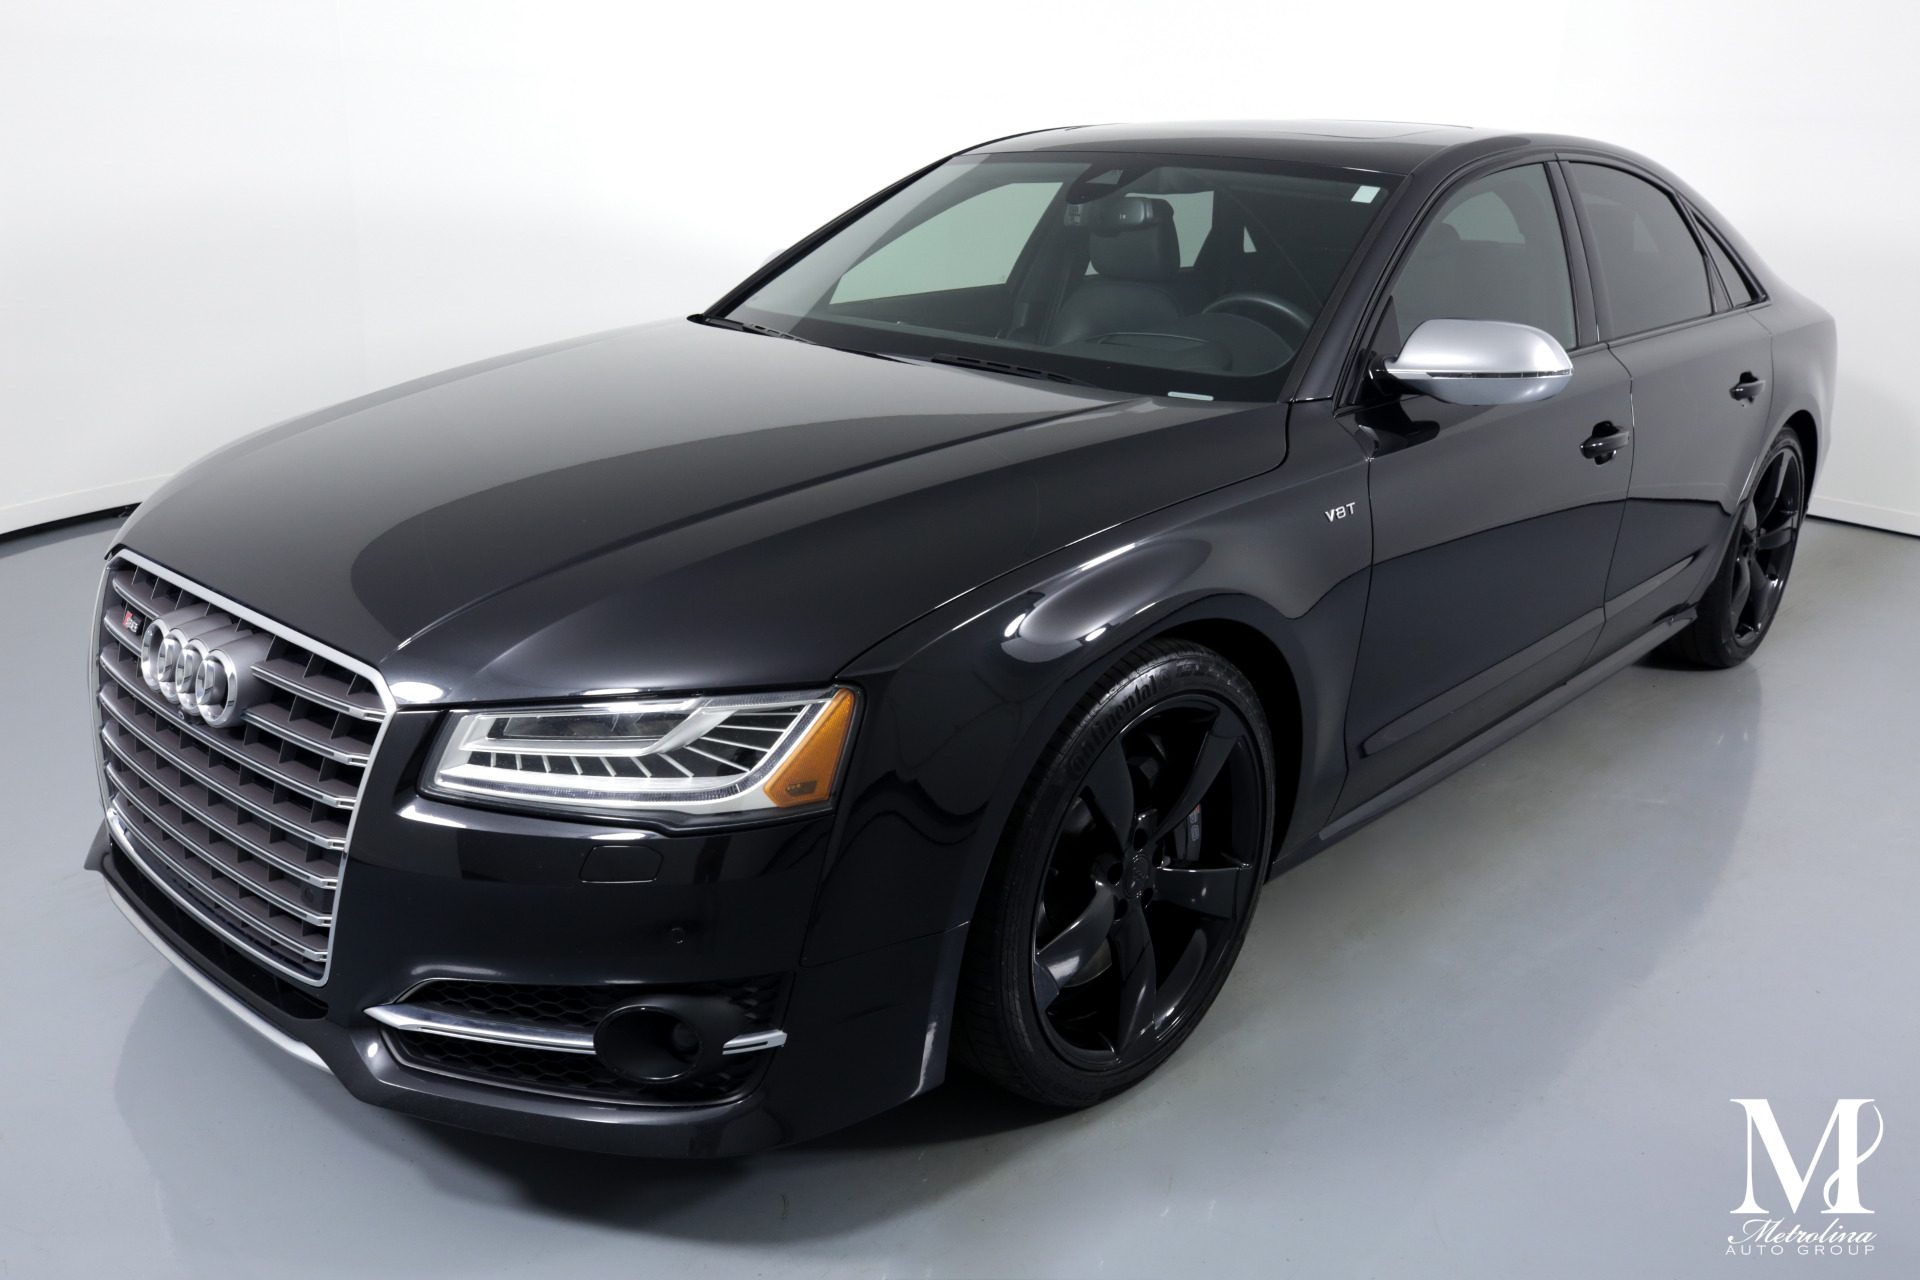 Used 2015 Audi S8 4.0T quattro for sale $39,996 at Metrolina Auto Group in Charlotte NC 28217 - 4